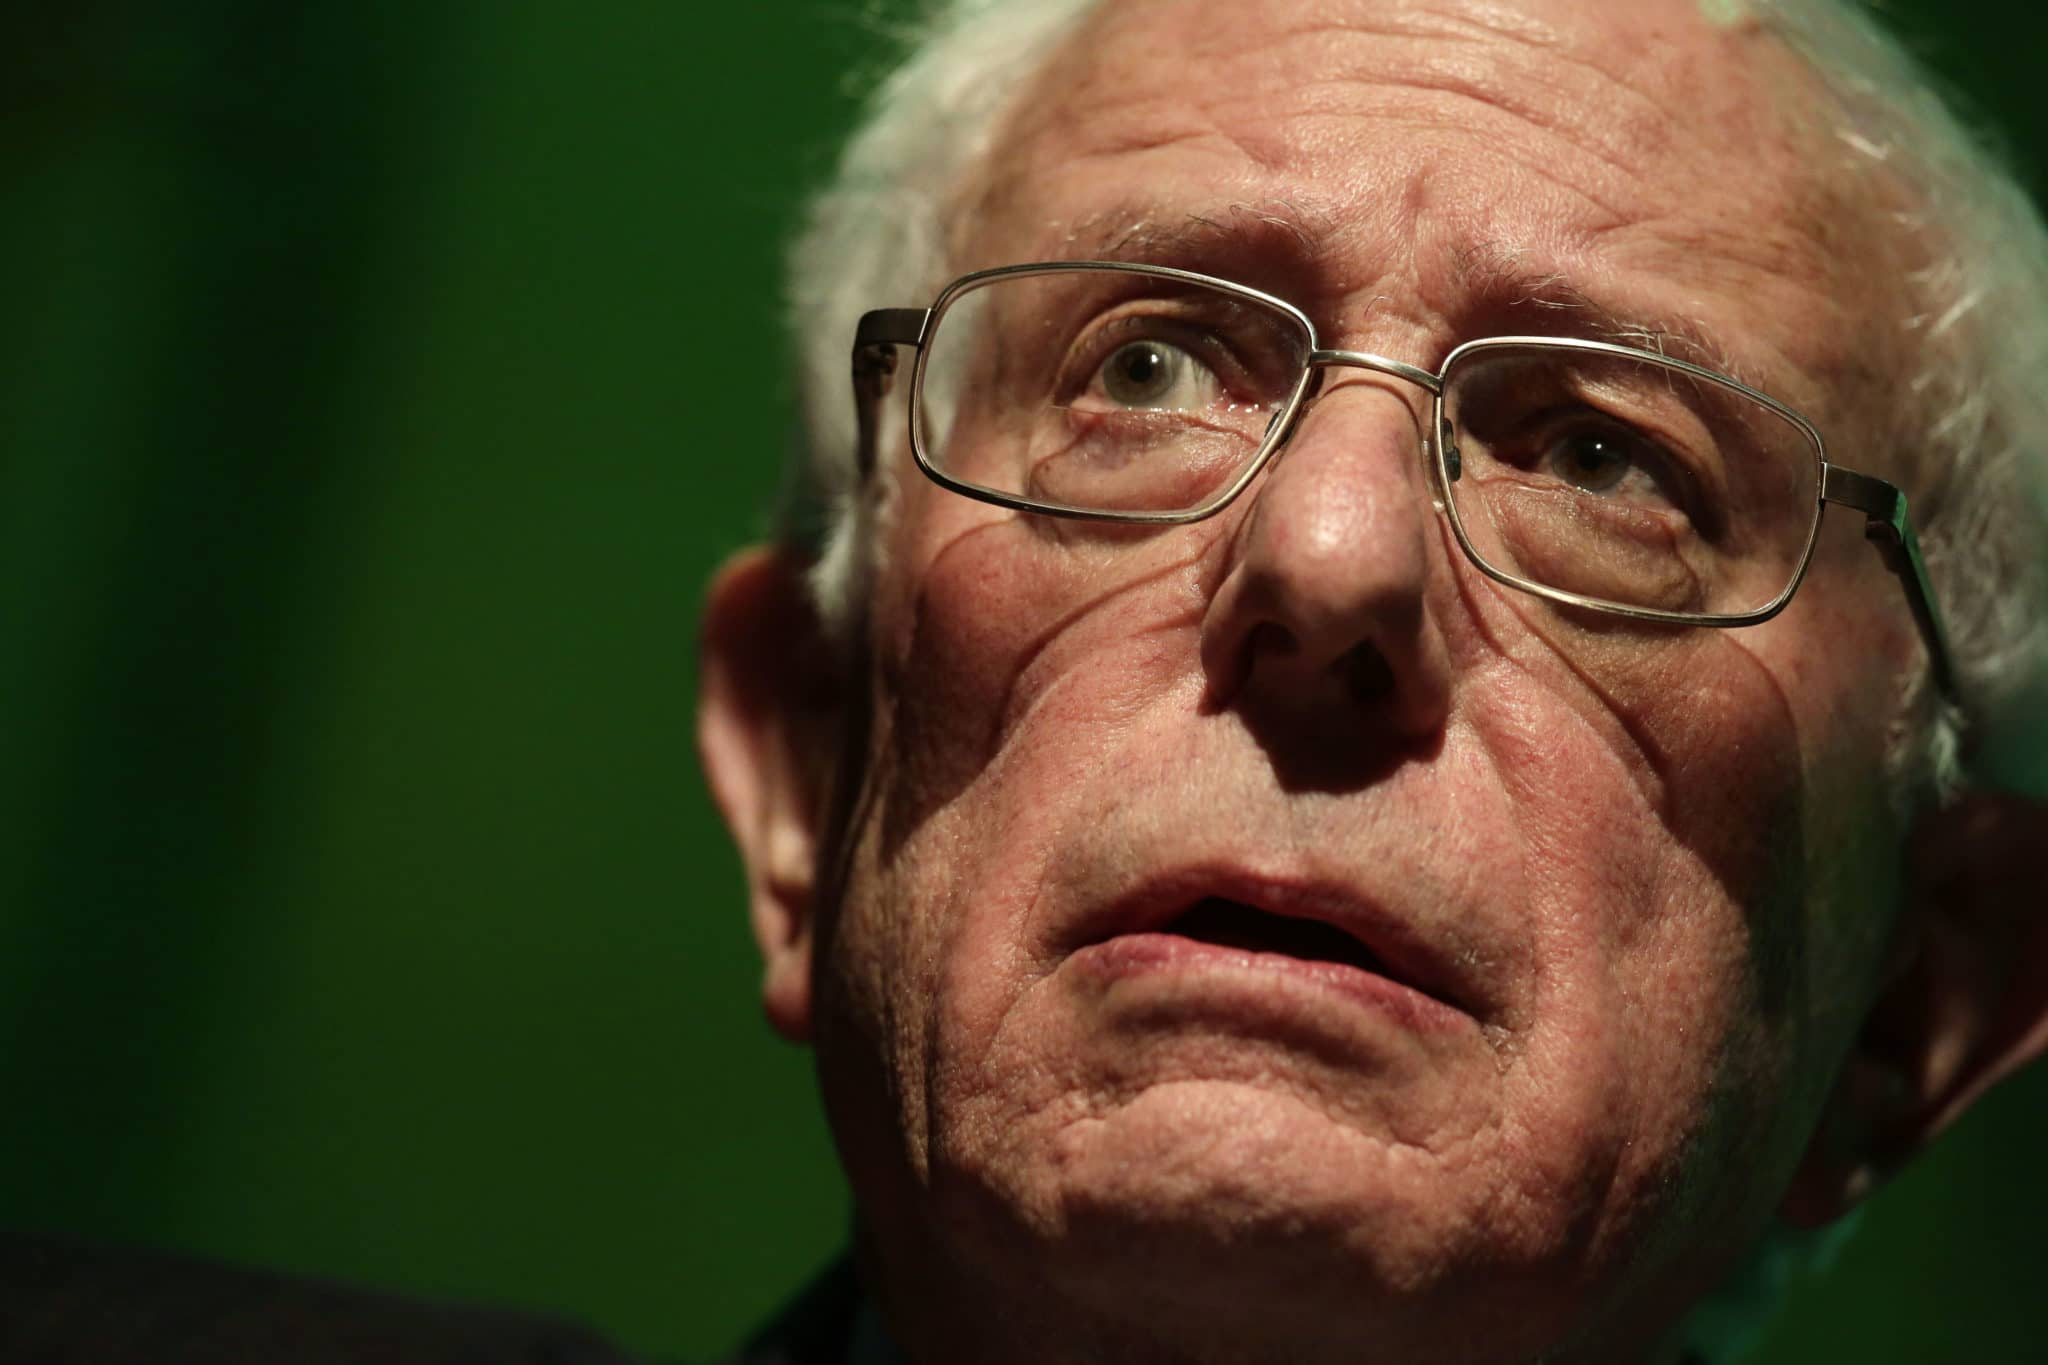 Bernie Sanders Now a 0.1% Favorite to Become Democrat Nominee